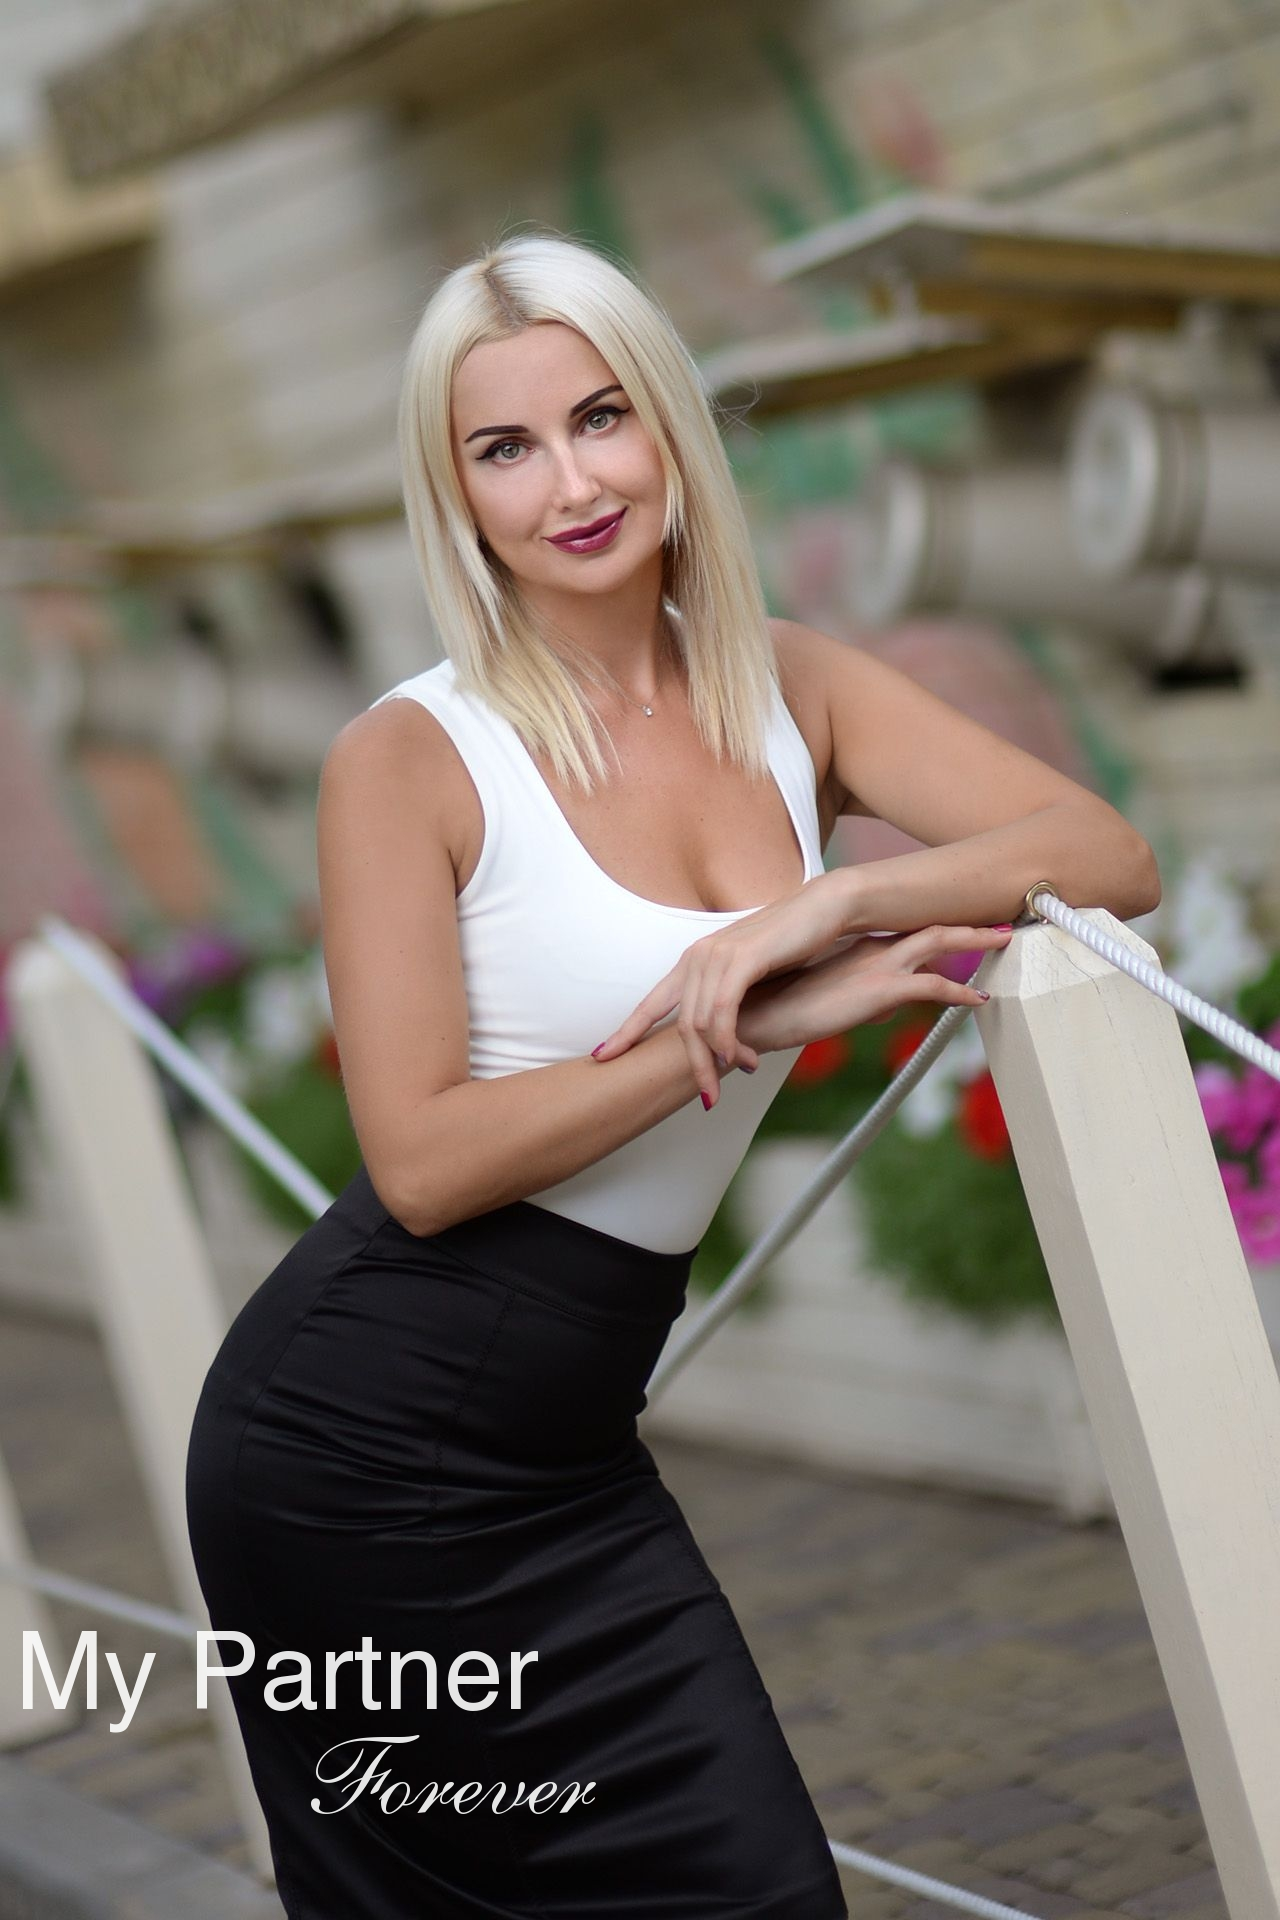 Dating Service to Meet Gorgeous Ukrainian Woman Marina from Kharkov, Ukraine